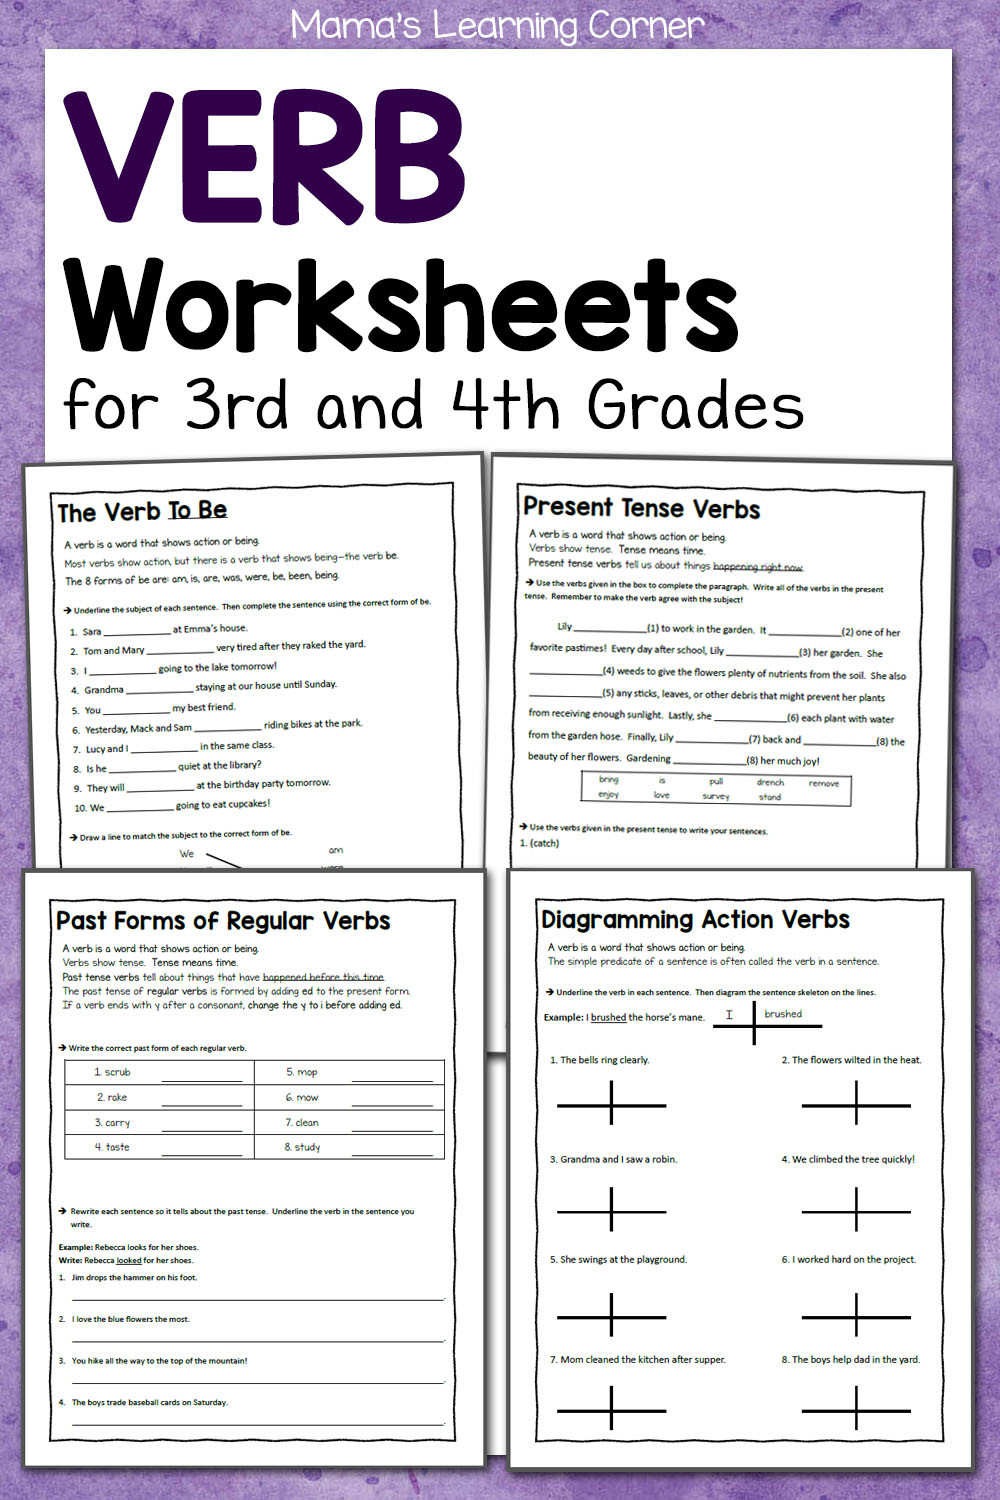 Verb Tense Worksheets 3rd Grade Verb Worksheets for 3rd and 4th Grades Mamas Learning Corner